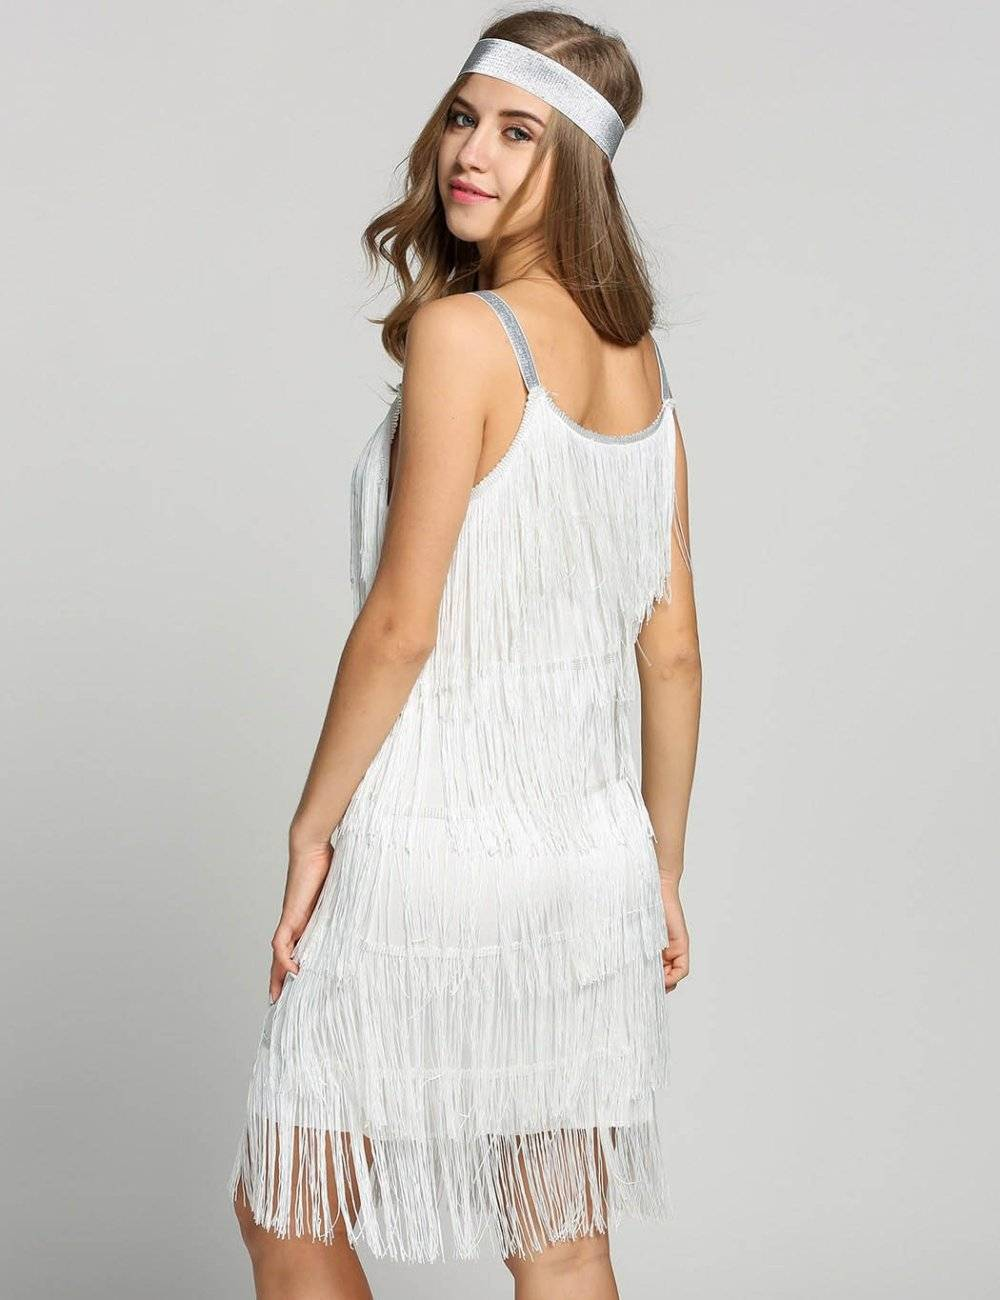 Vintage great gatsby swing party dress